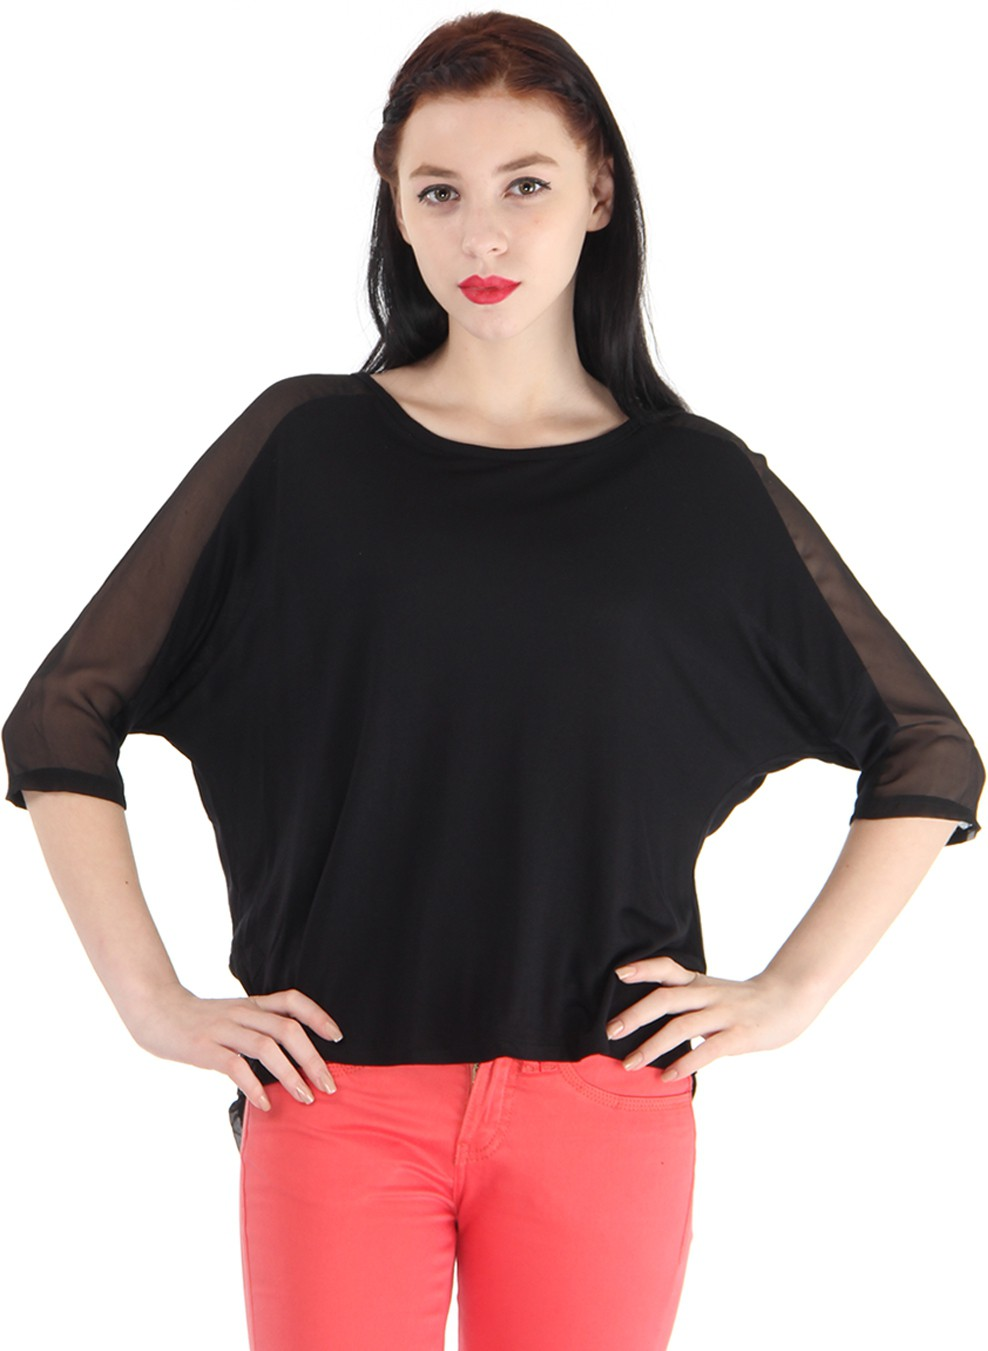 Pepe Jeans Solid Women's Round Neck Black T-Shirt